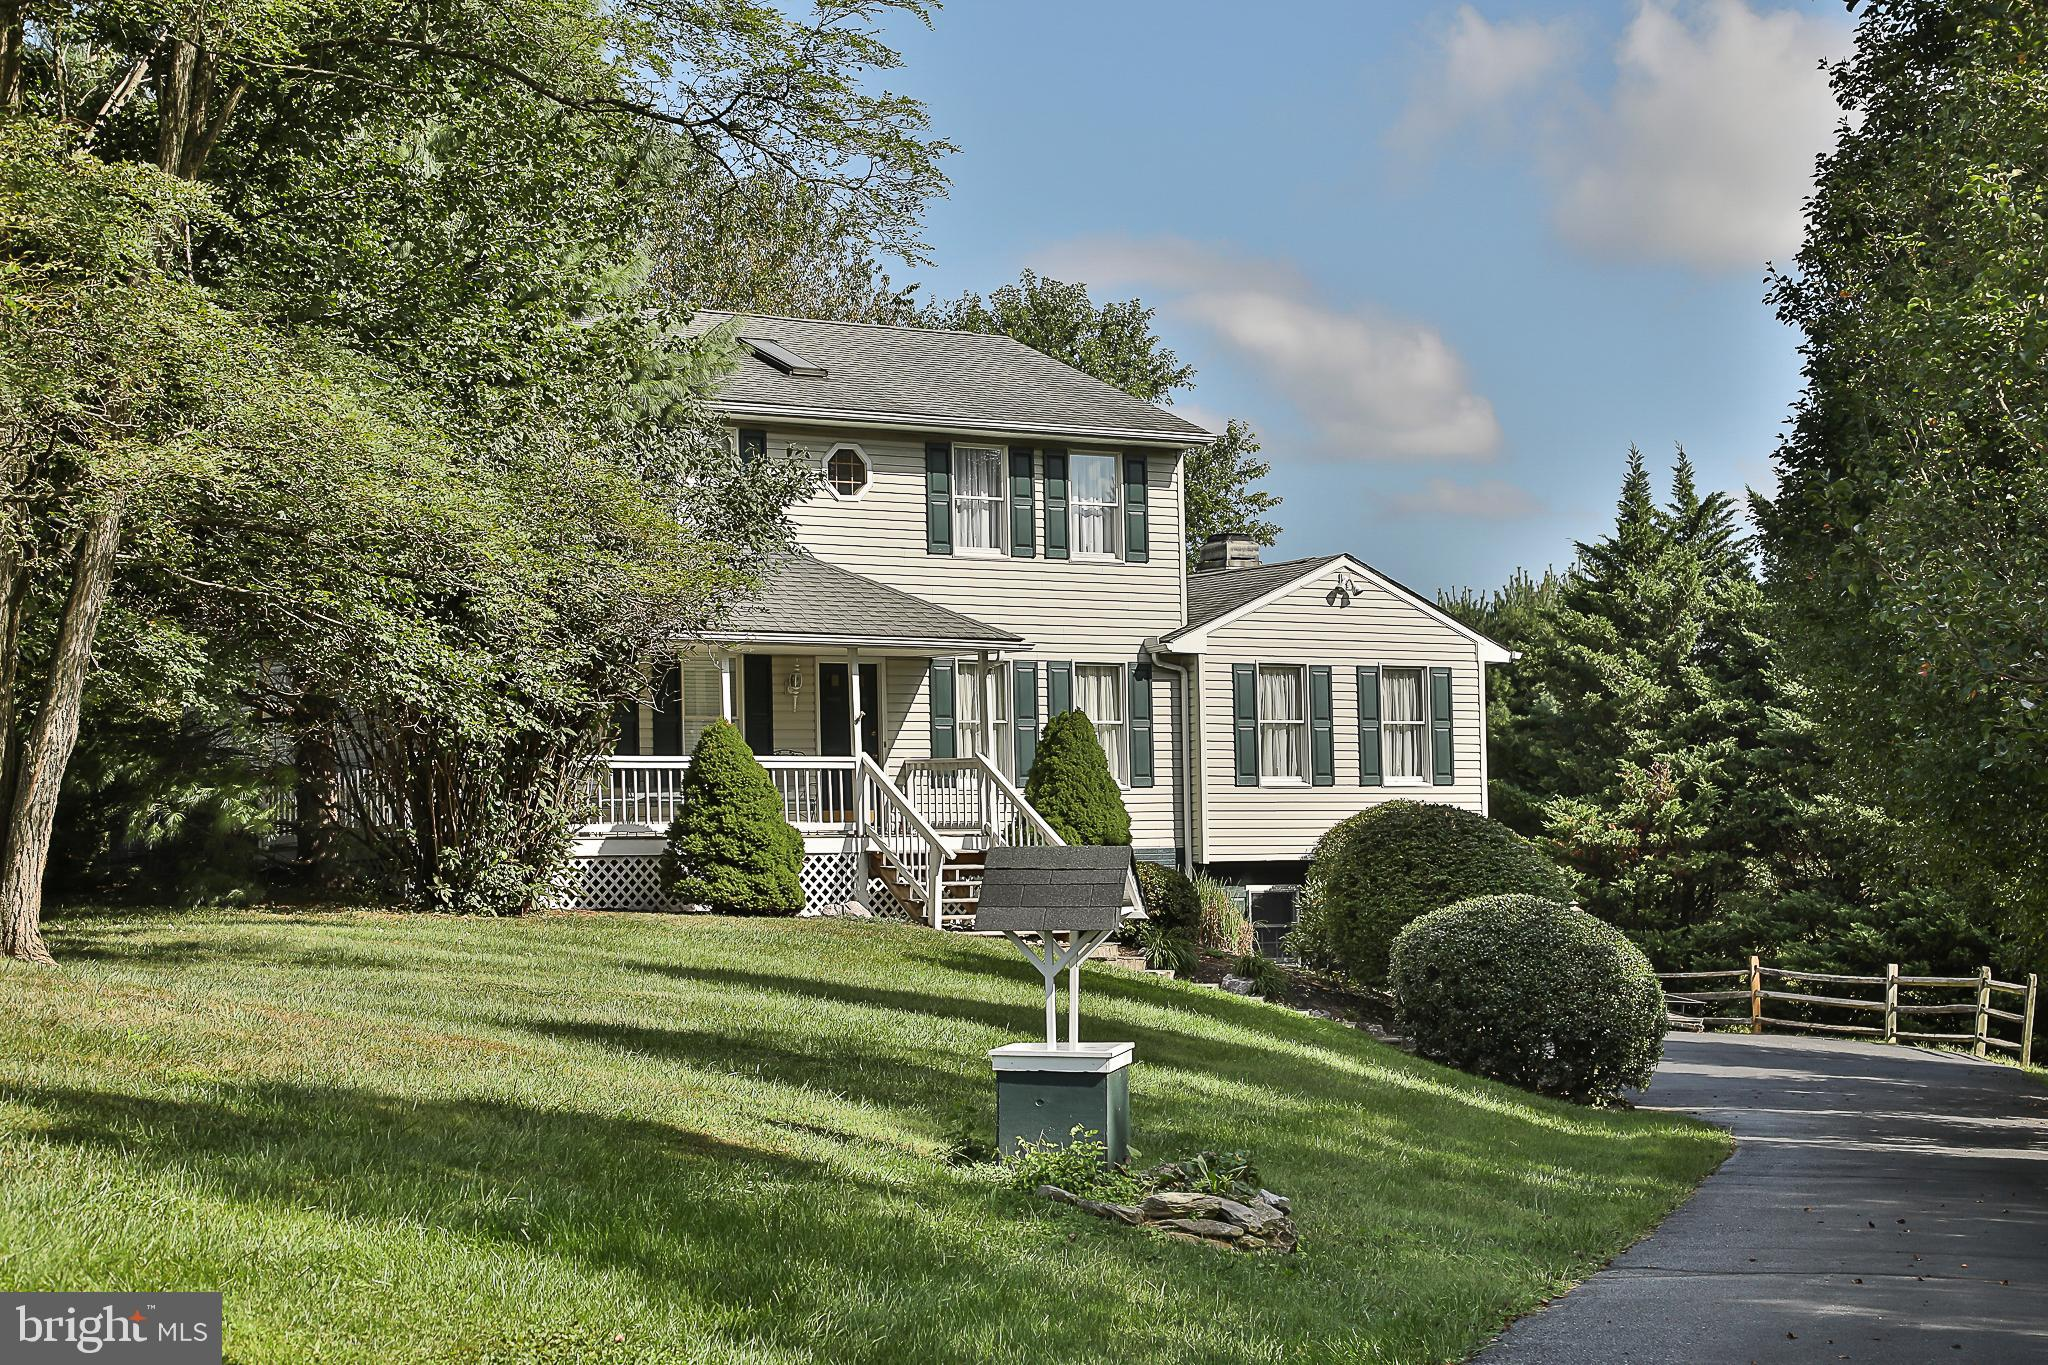 12170 ROSSWOOD DRIVE, MONROVIA, MD 21770